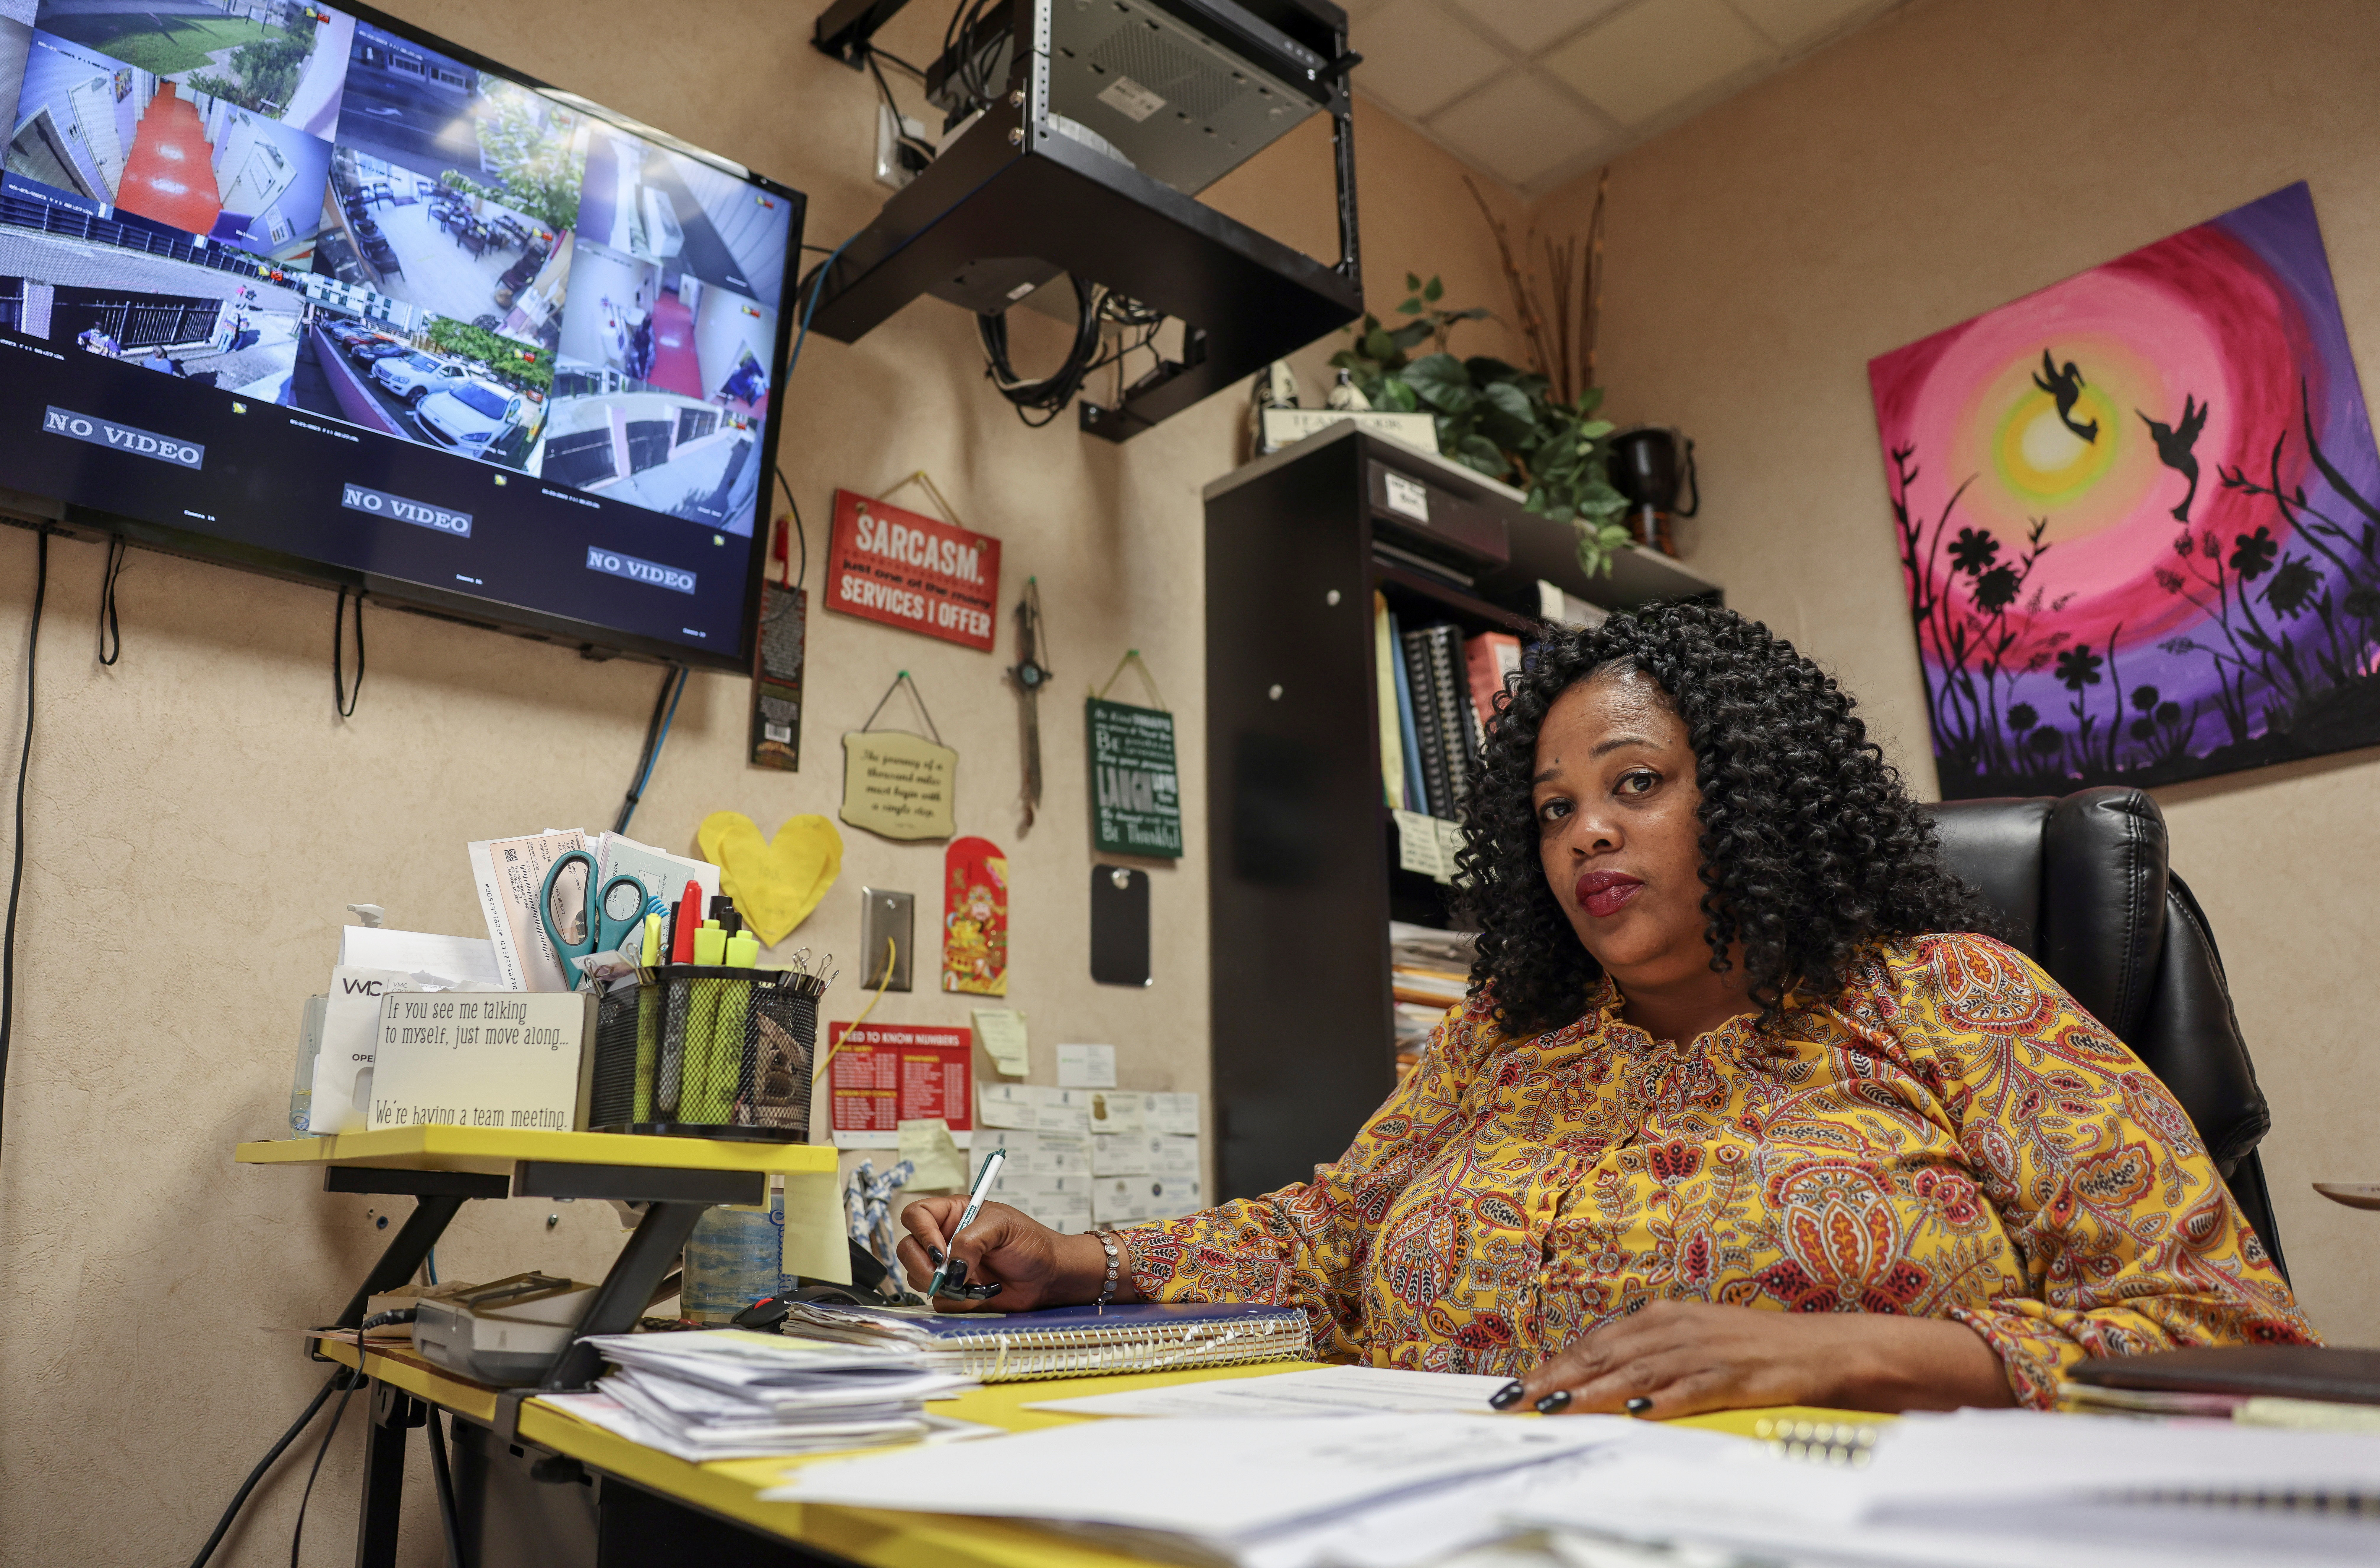 Clinic Director Shannon Brewer sits at work in Jackson Women's Health Organization, the only abortion provider in the state, in Jackson, Mississippi, U.S. May 21, 2021. Picture taken May 21, 2021. REUTERS/Evelyn Hockstein